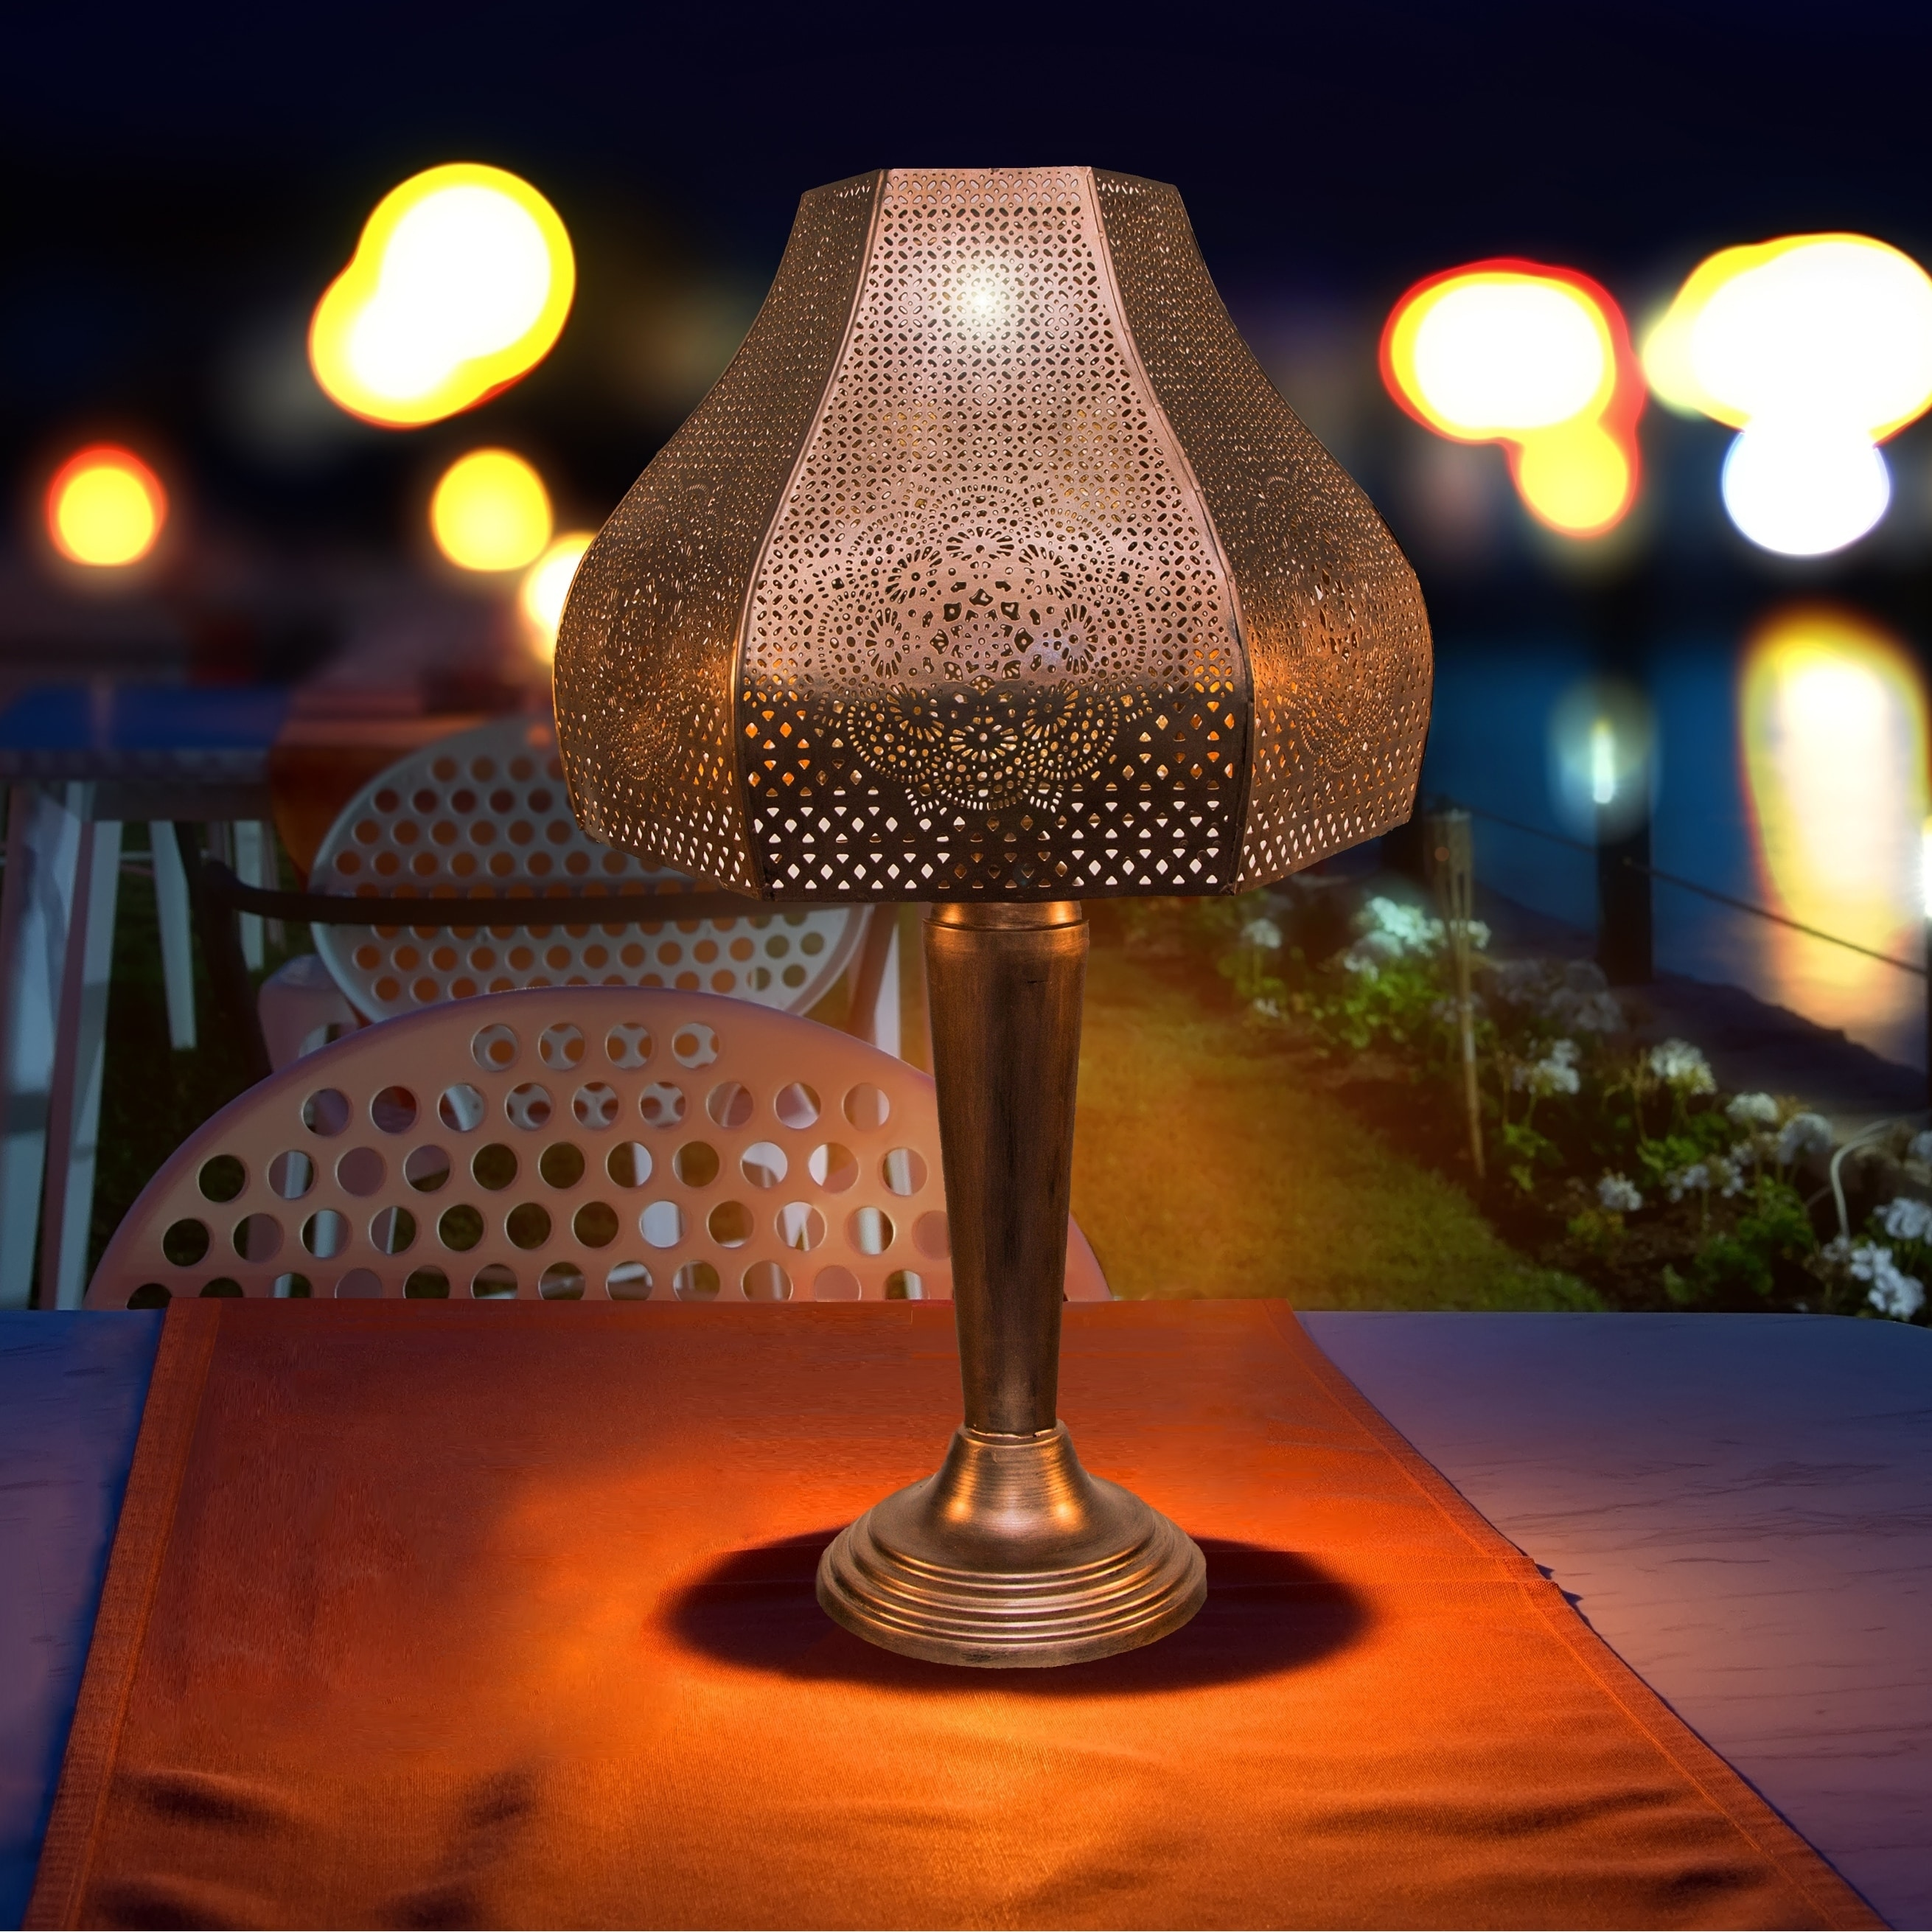 23 75 Moroccan Punched Metal Outdoor Solar Led Table Lamp